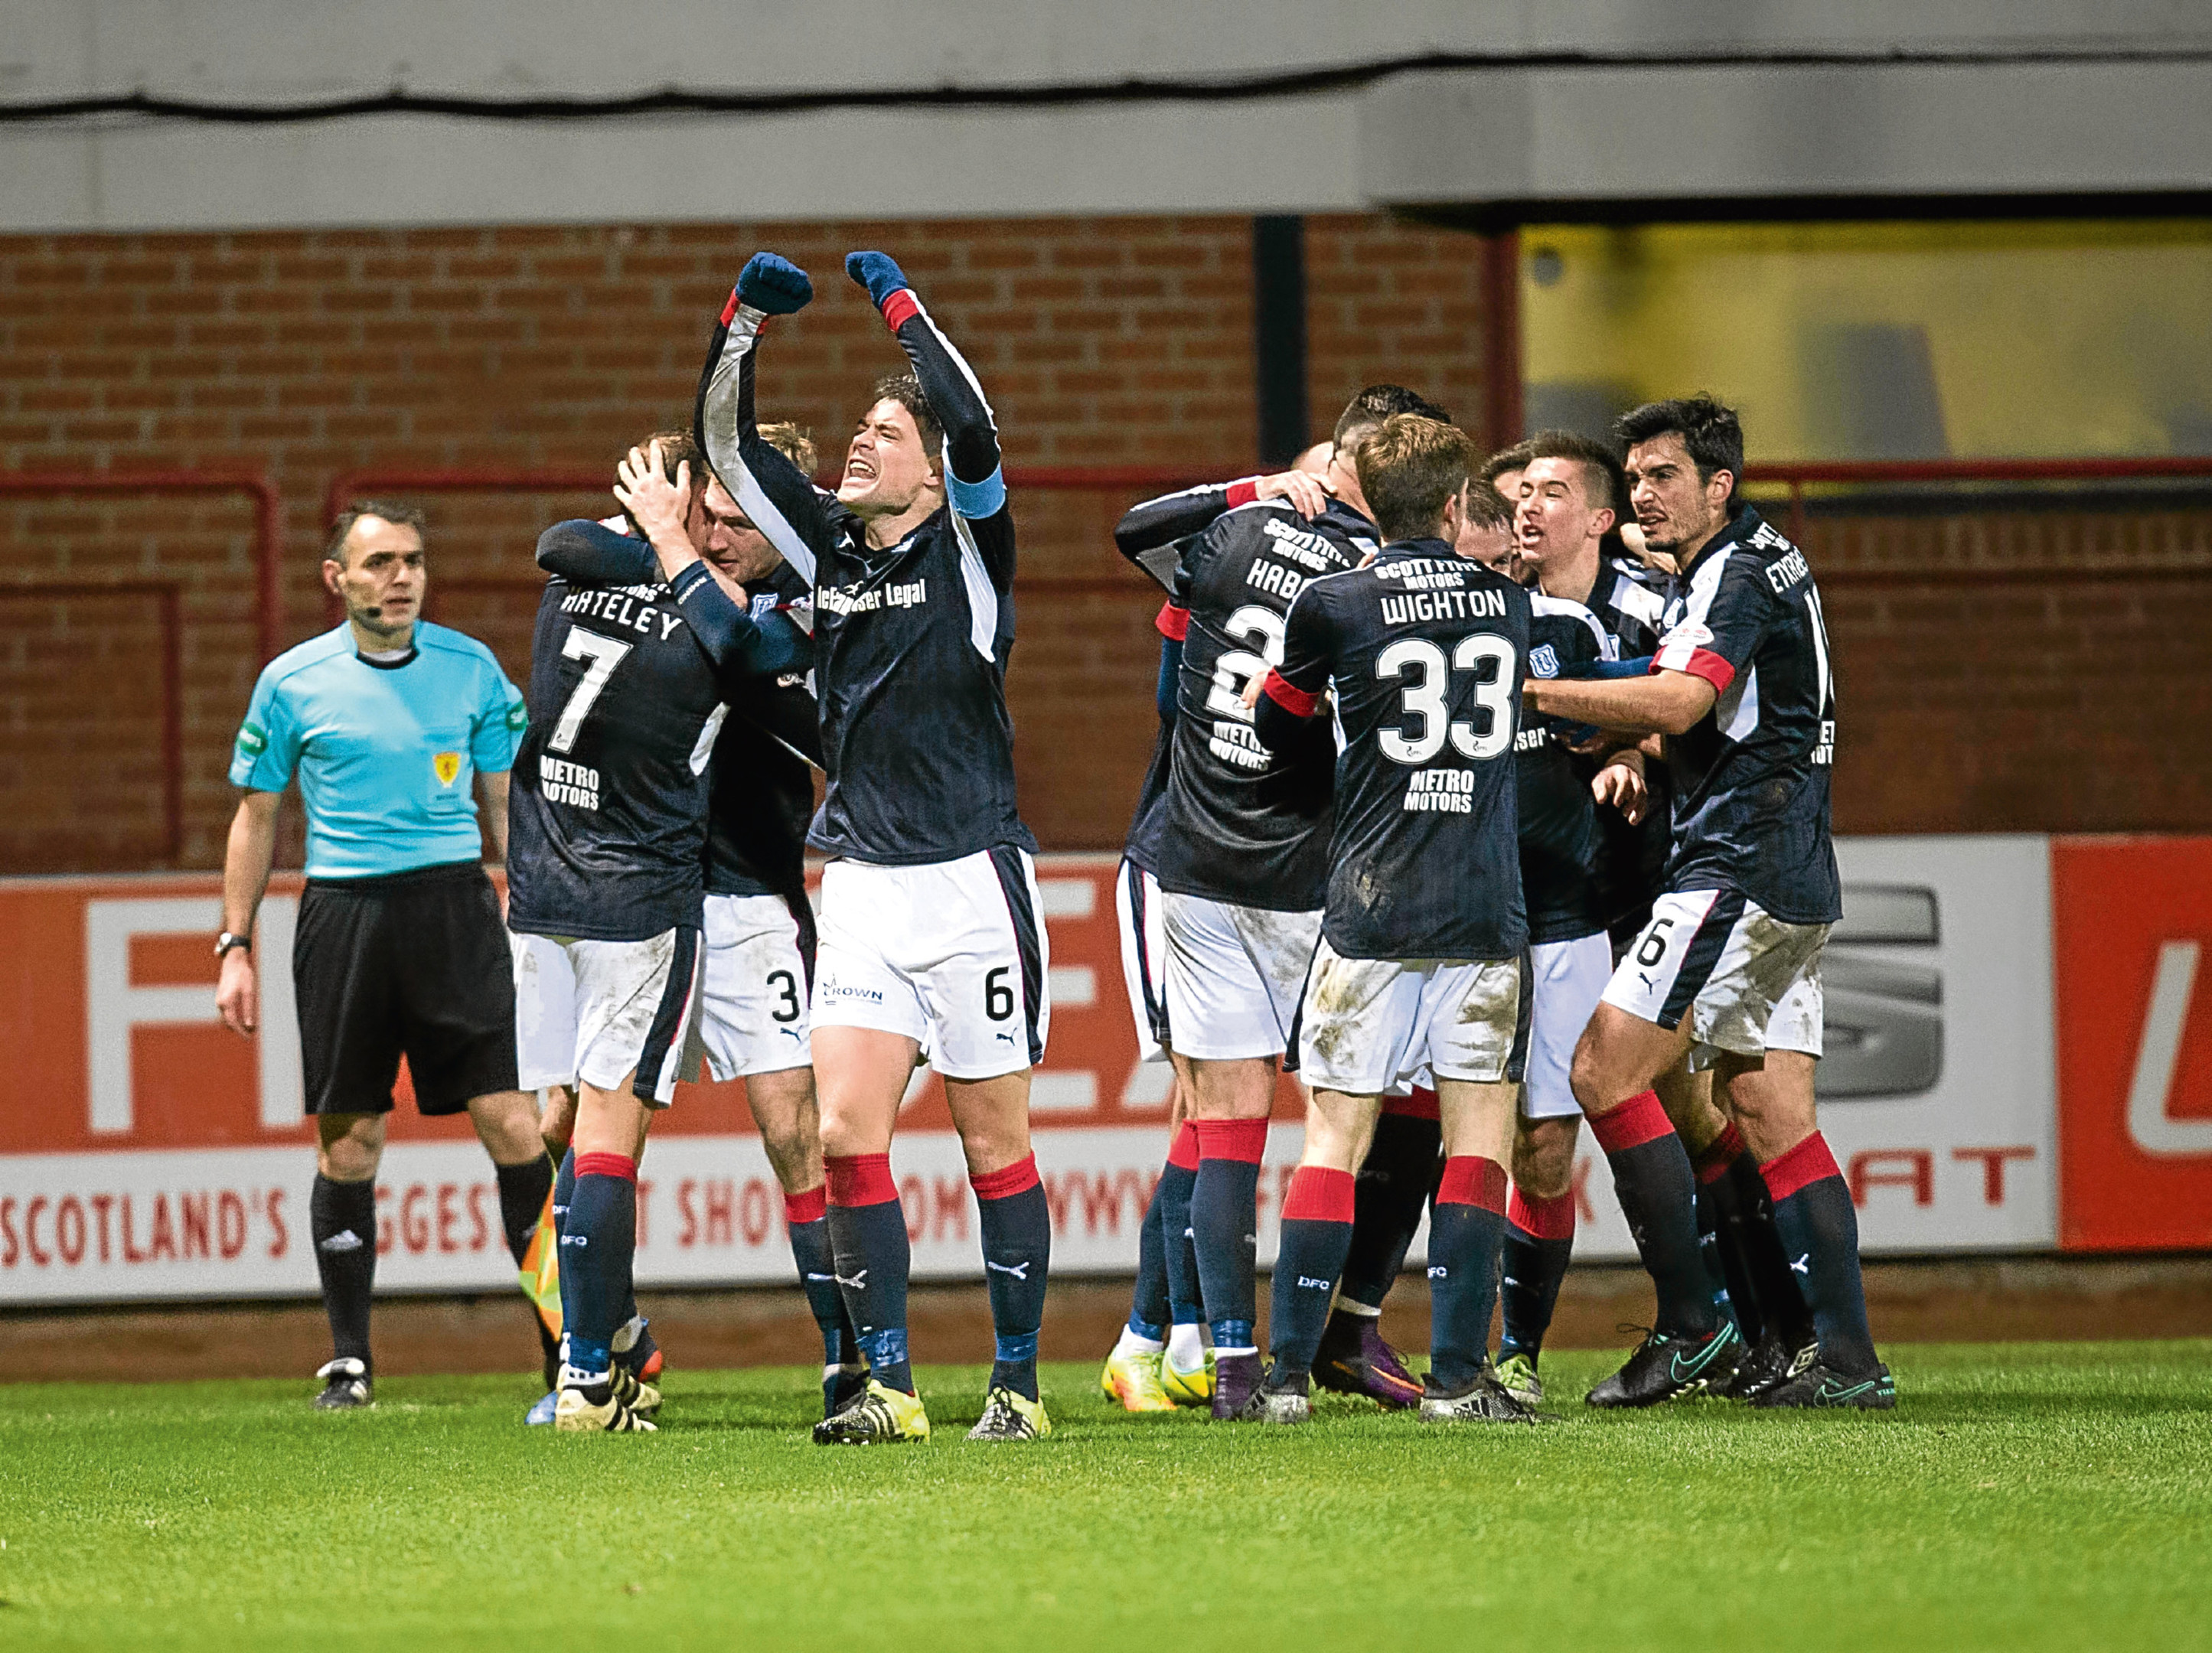 Dundee players celebrate the winning goal after a dramatic comeback against Heartd. Picture by David Young